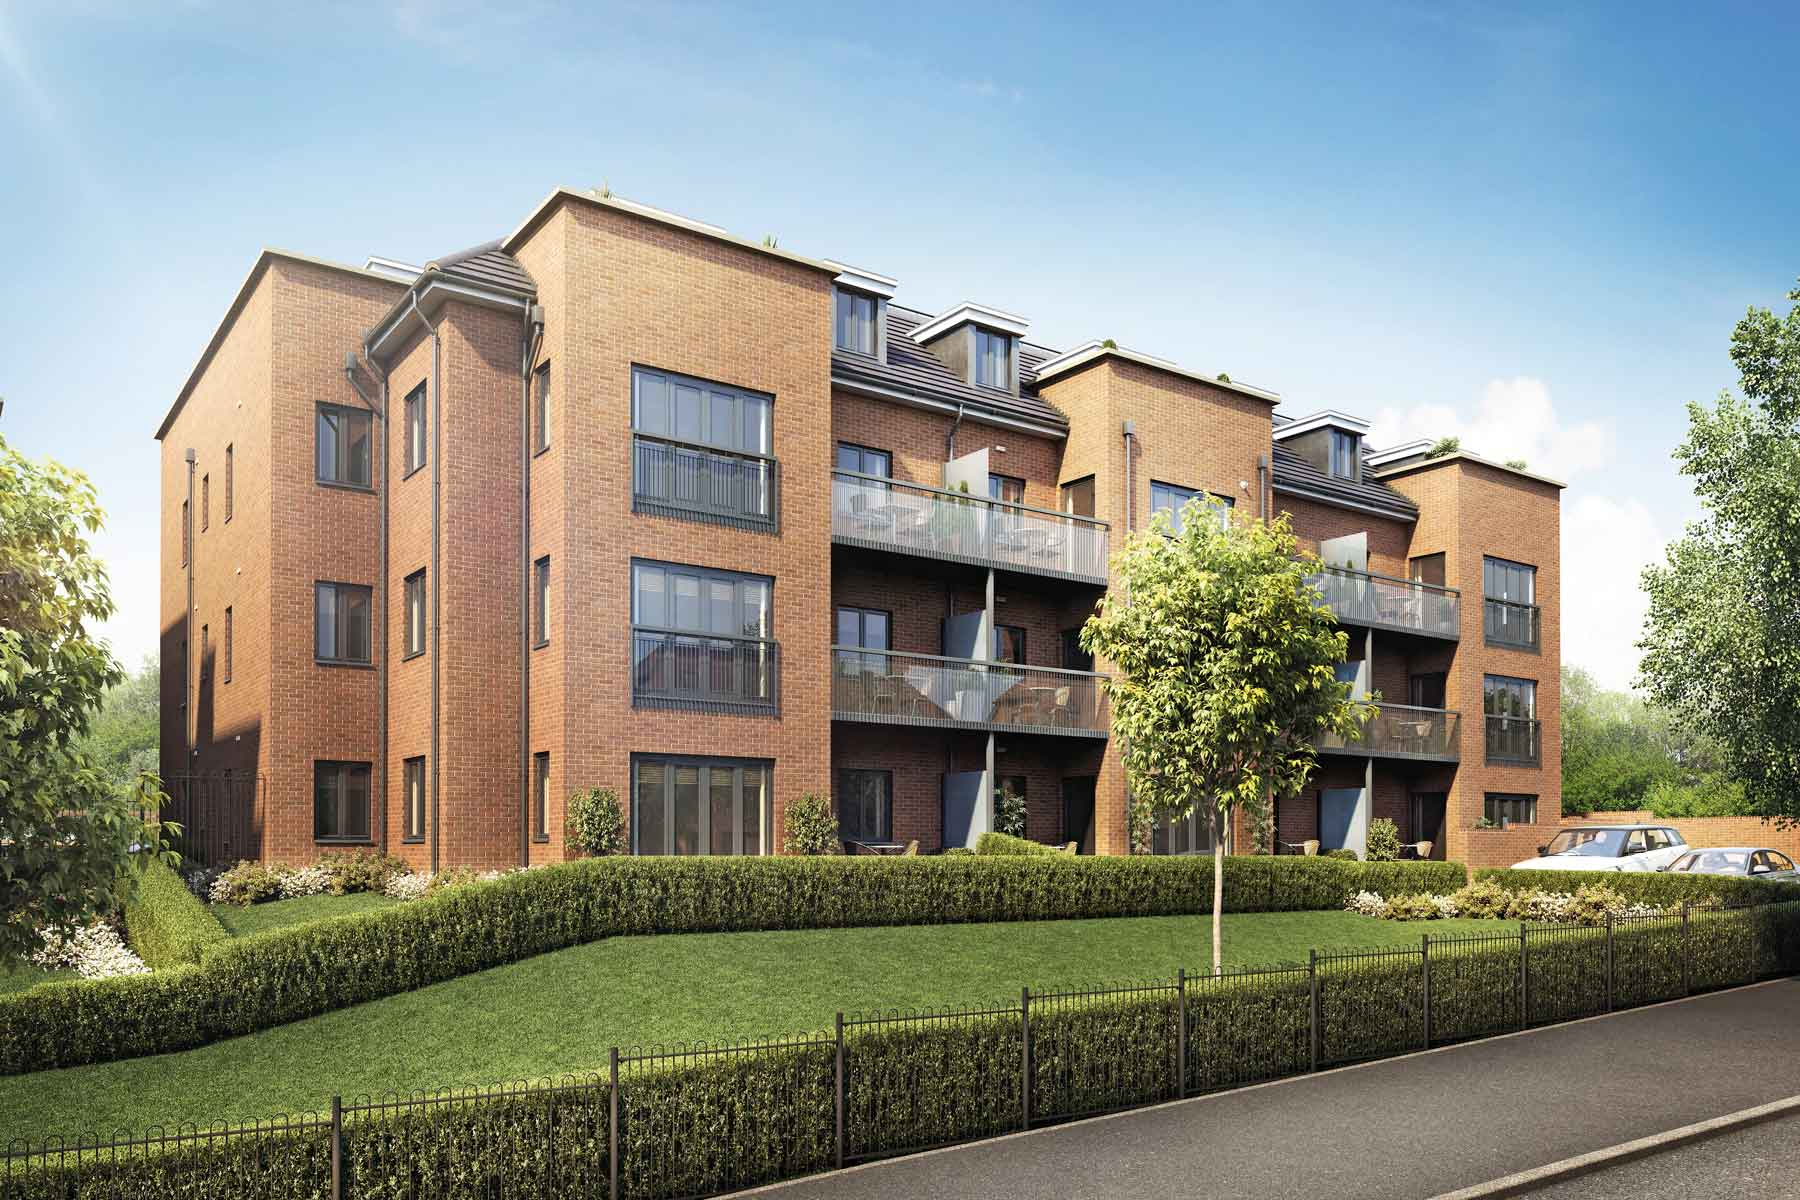 New-Block3-Plots-46-68_Melford_Court_1800x1200_WEB